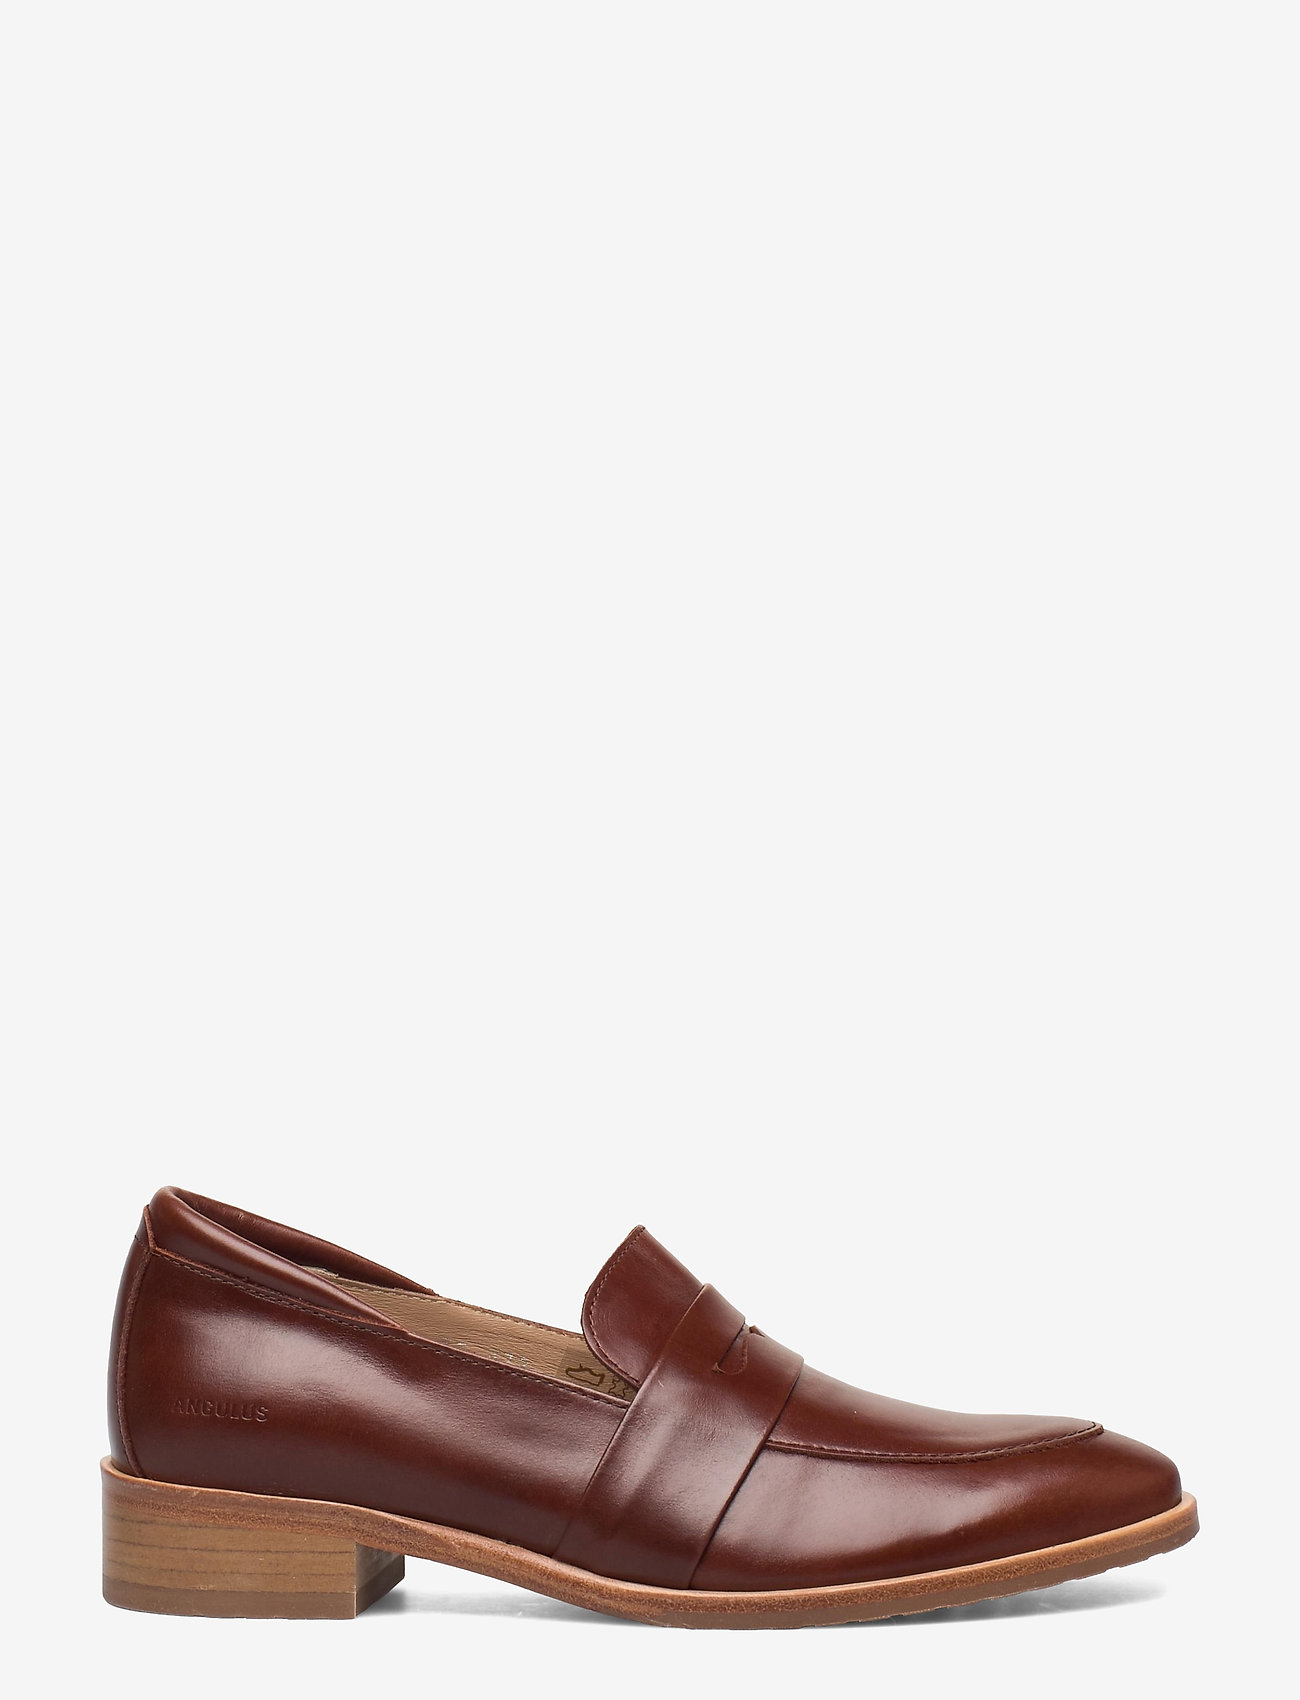 ANGULUS - Loafer - flat - instappers - 1837 brown - 1